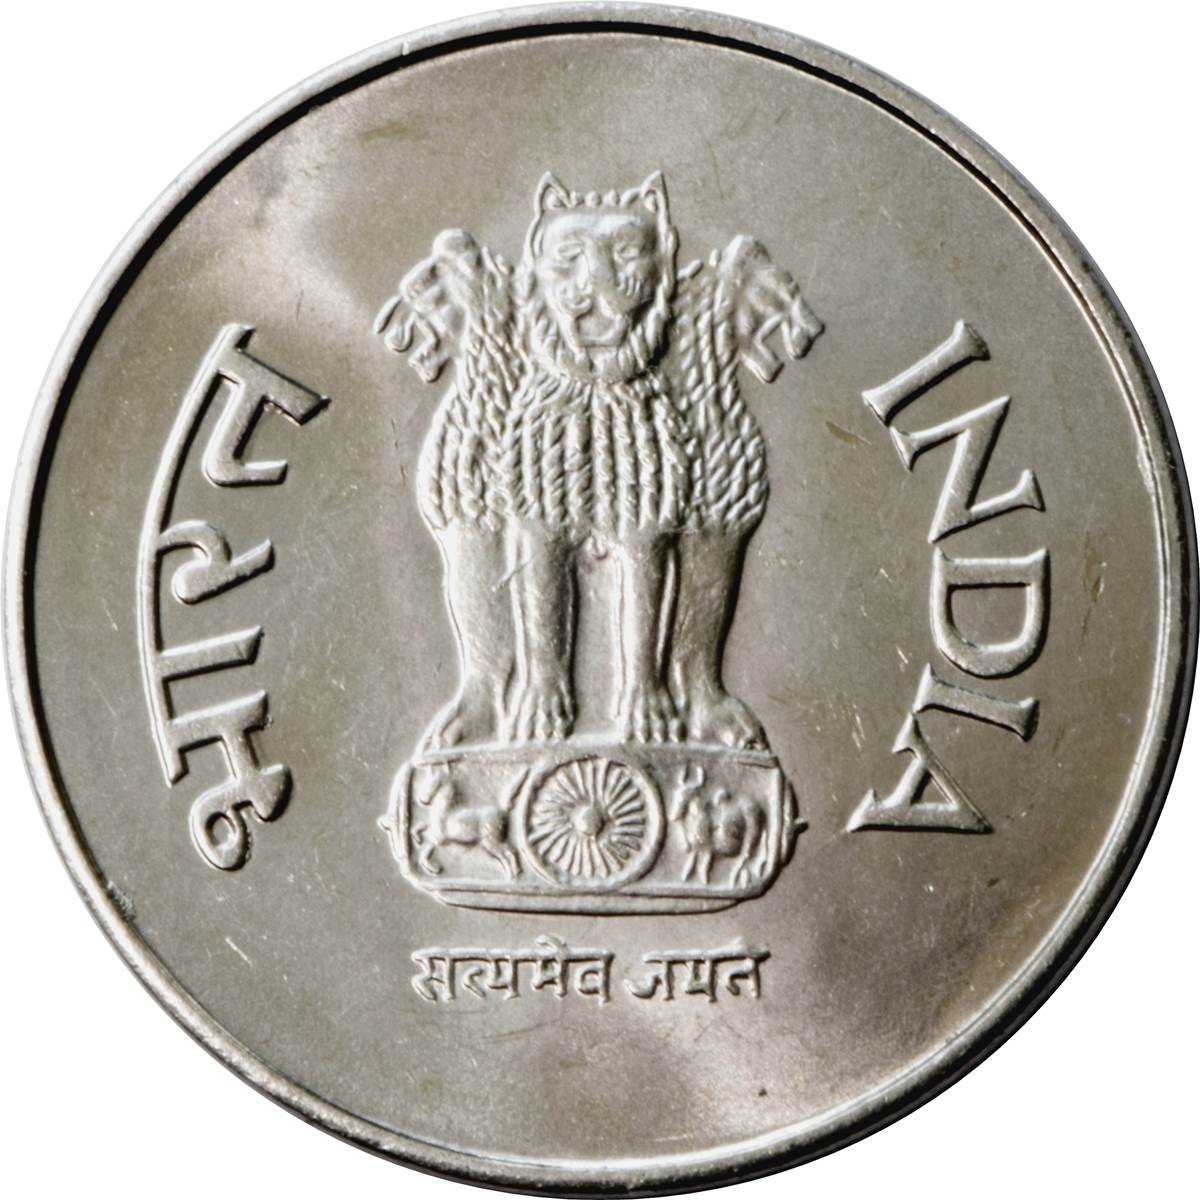 India 2003-1 Rupee Stainless Steel Coin Star